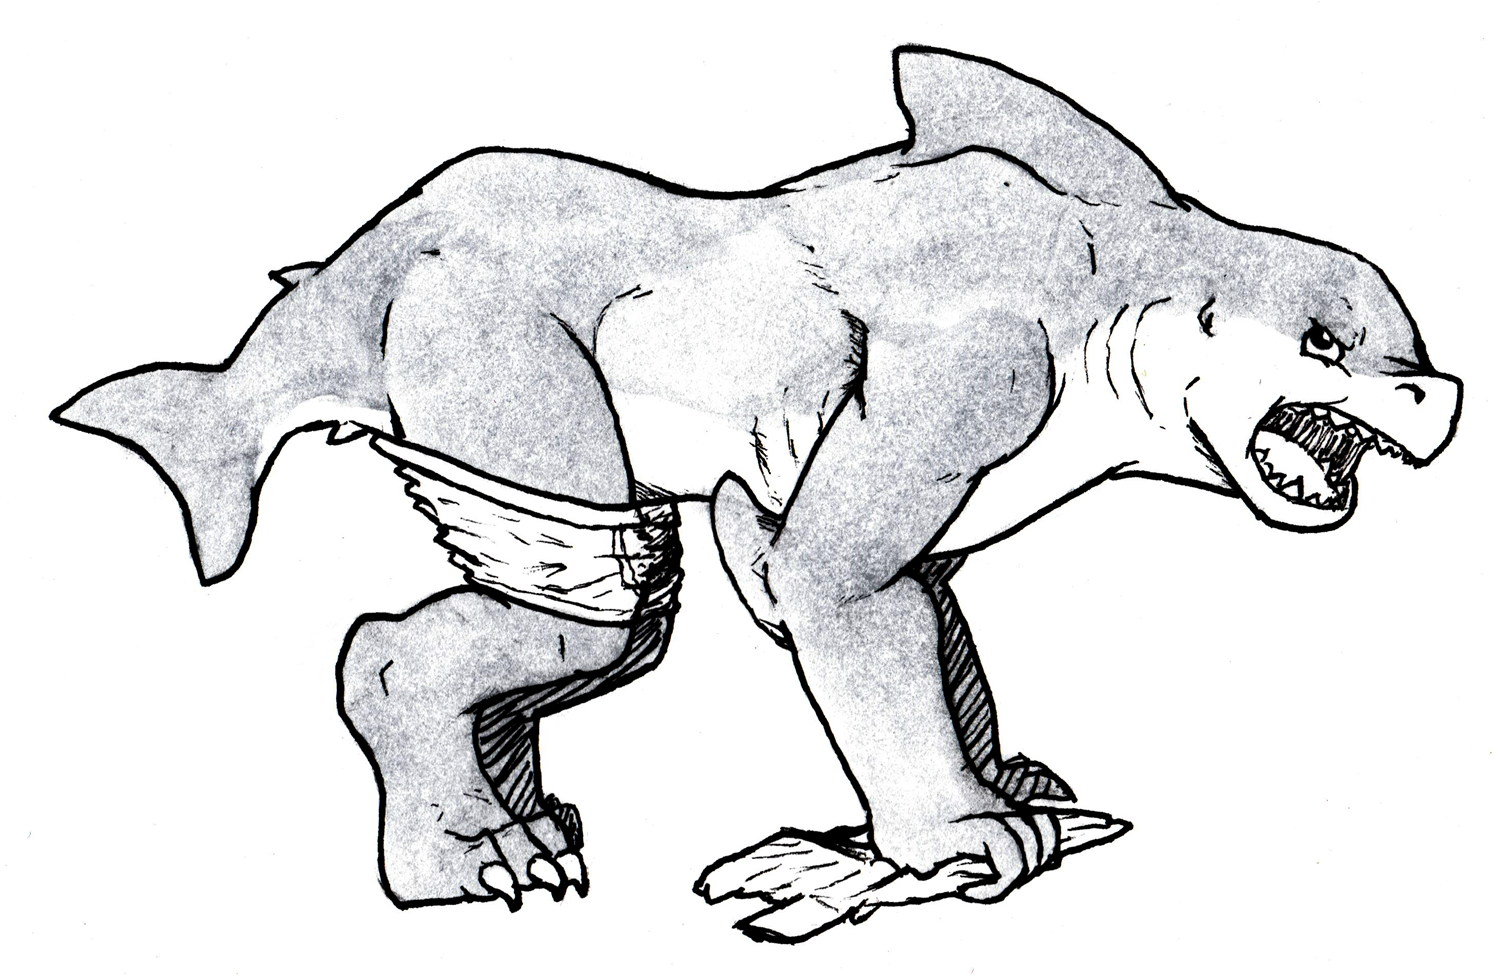 Quadrupedal wereshark dude by THE COAST IS NEAR